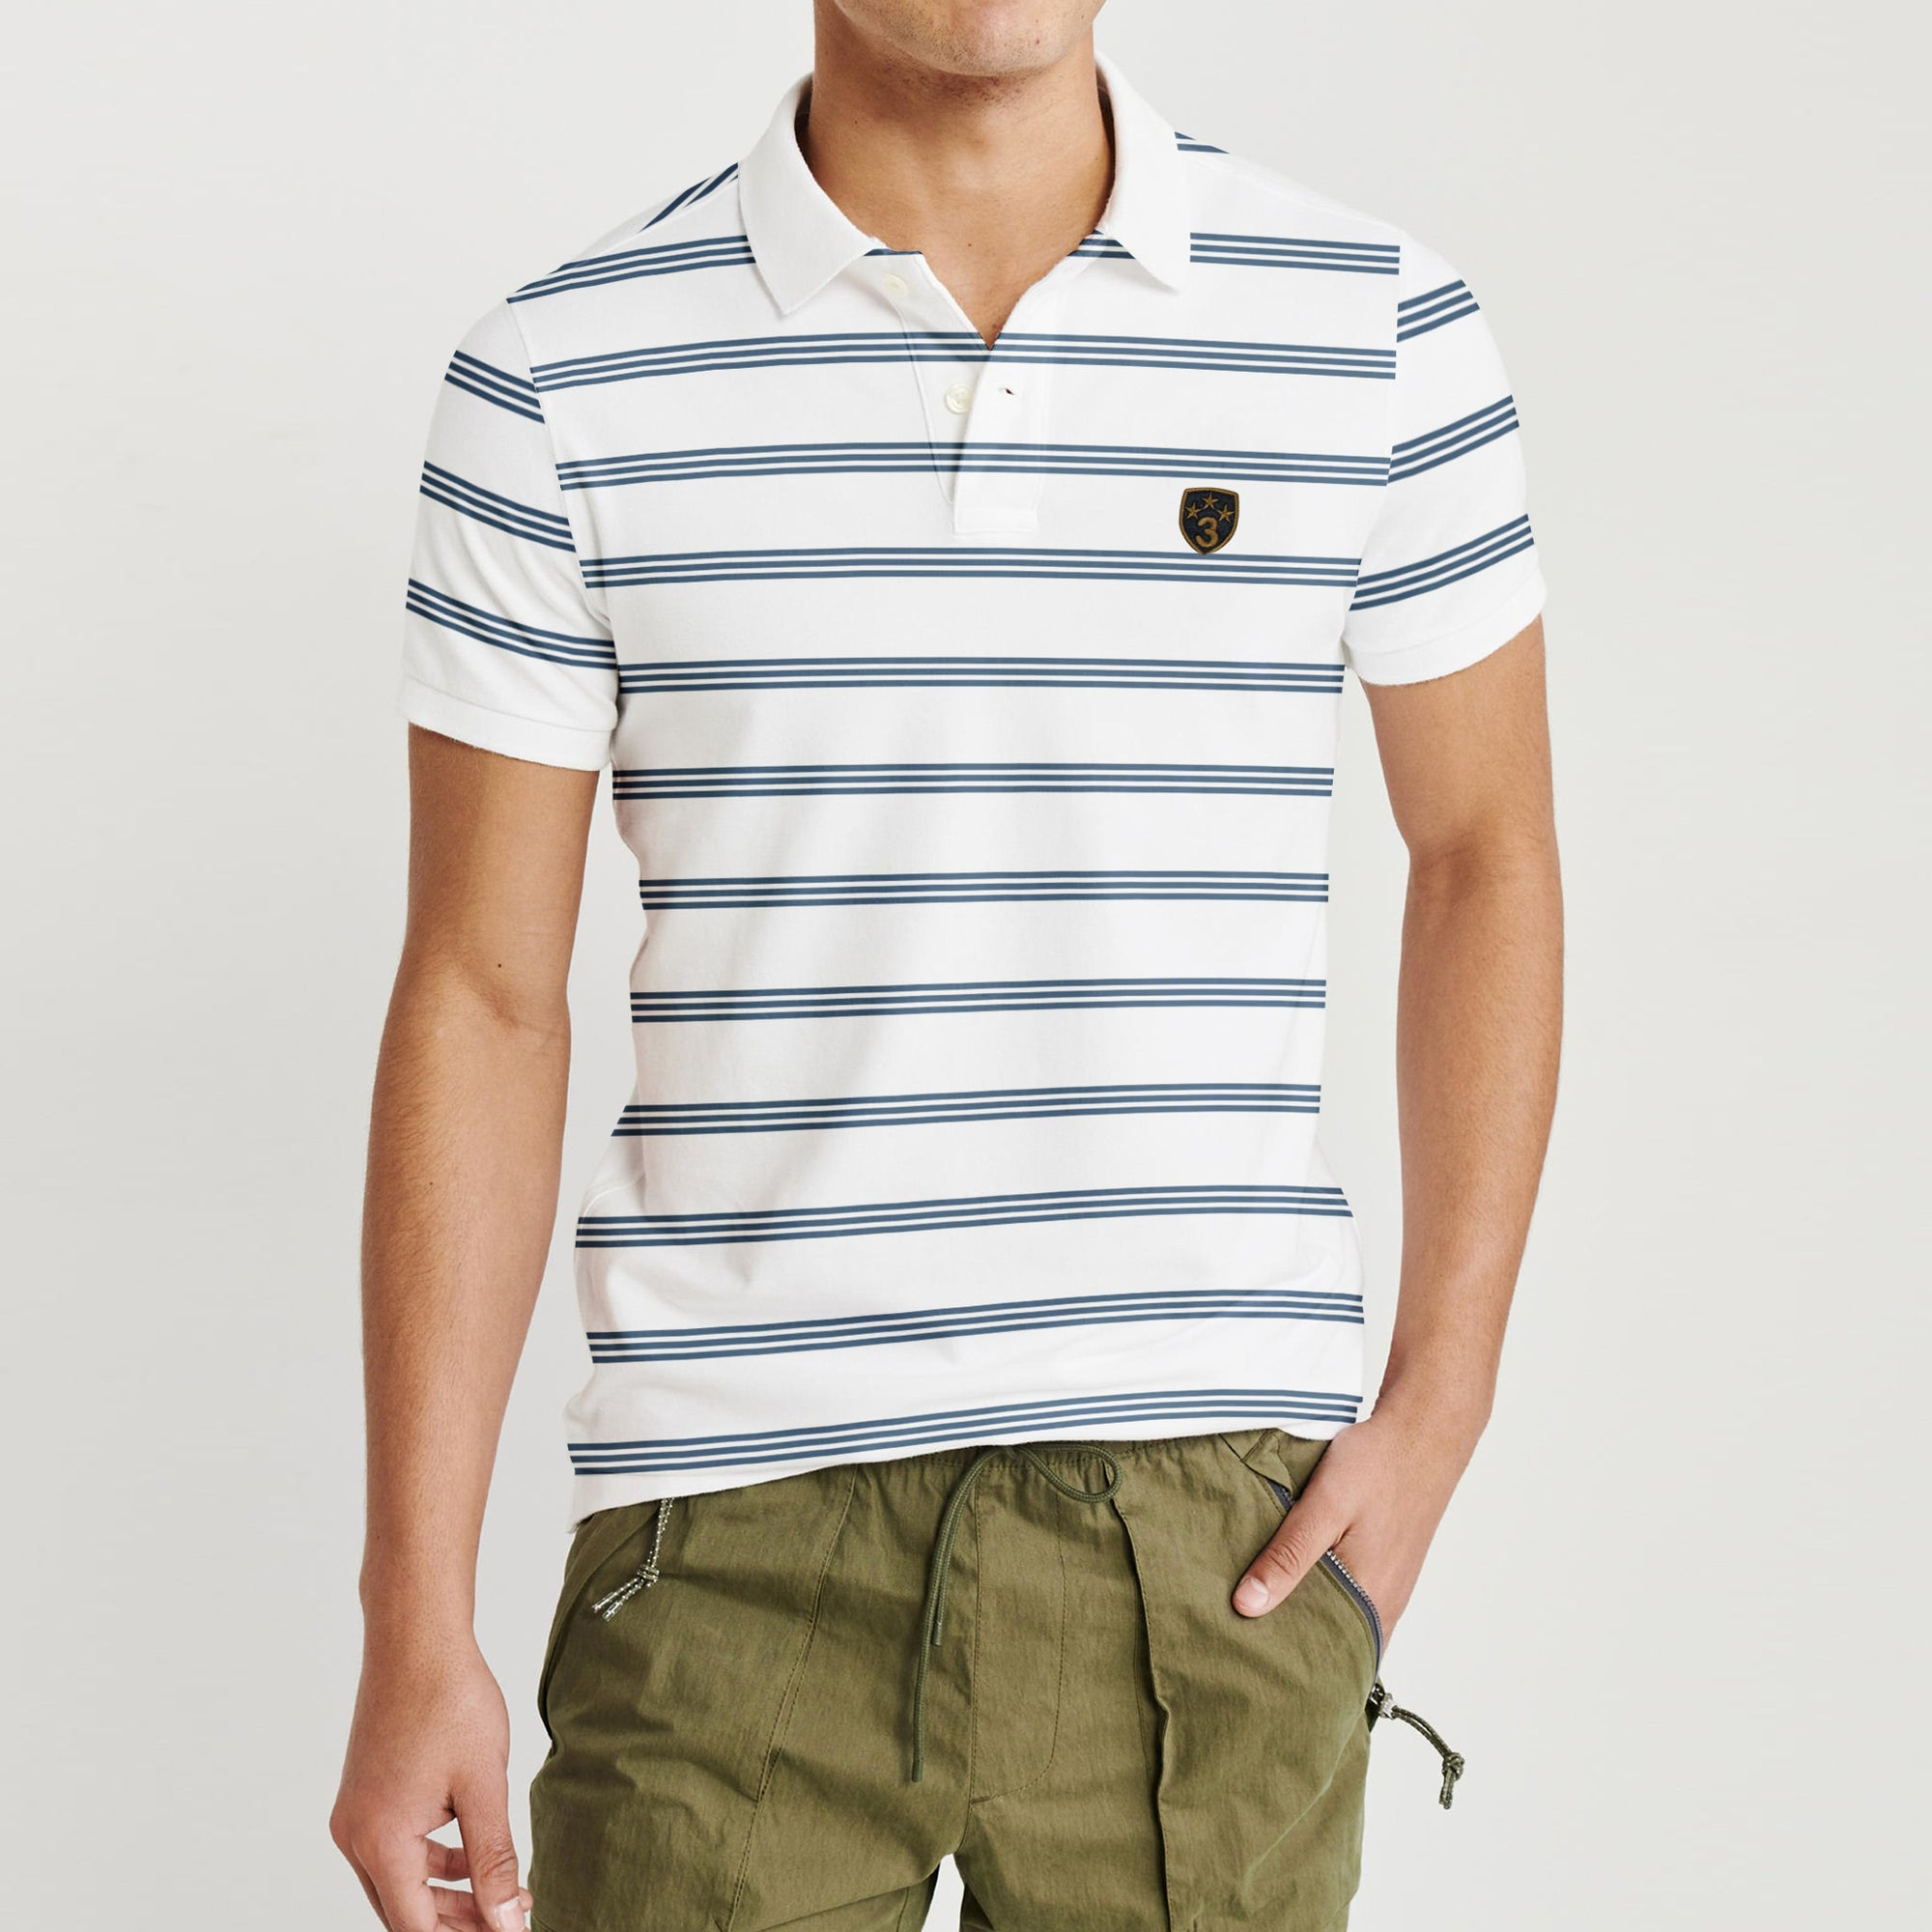 brandsego - Banana Republic Short Sleeve P.Q Polo Shirt For Men-White with Stripe-BE8320